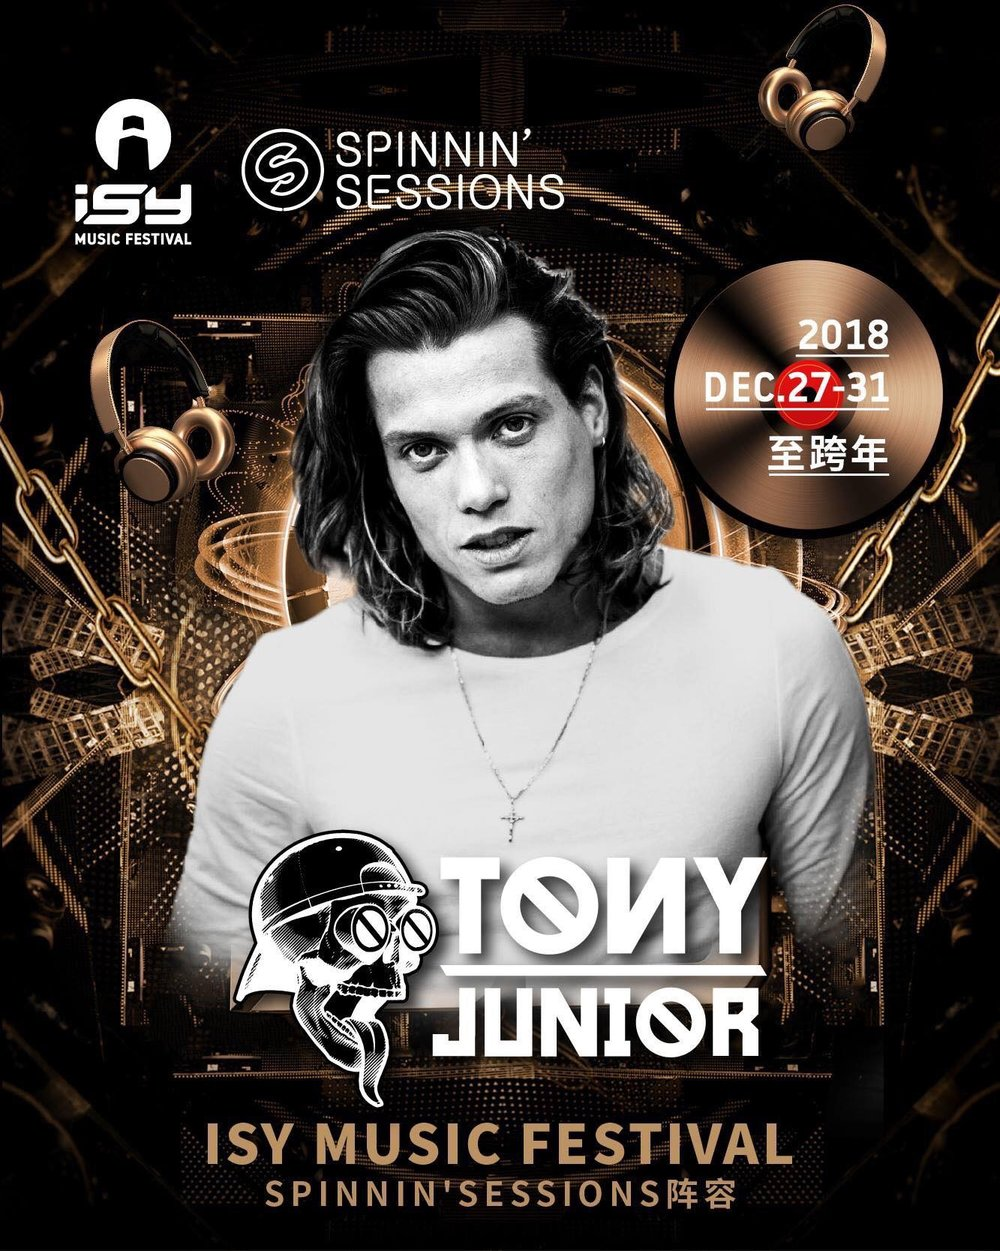 Tony Junior - is a Dutch DJ and record producer from Utrecht. He has released a number of charting singles and is best known for his collaborations with DVBBS, NERVO and Tiësto.